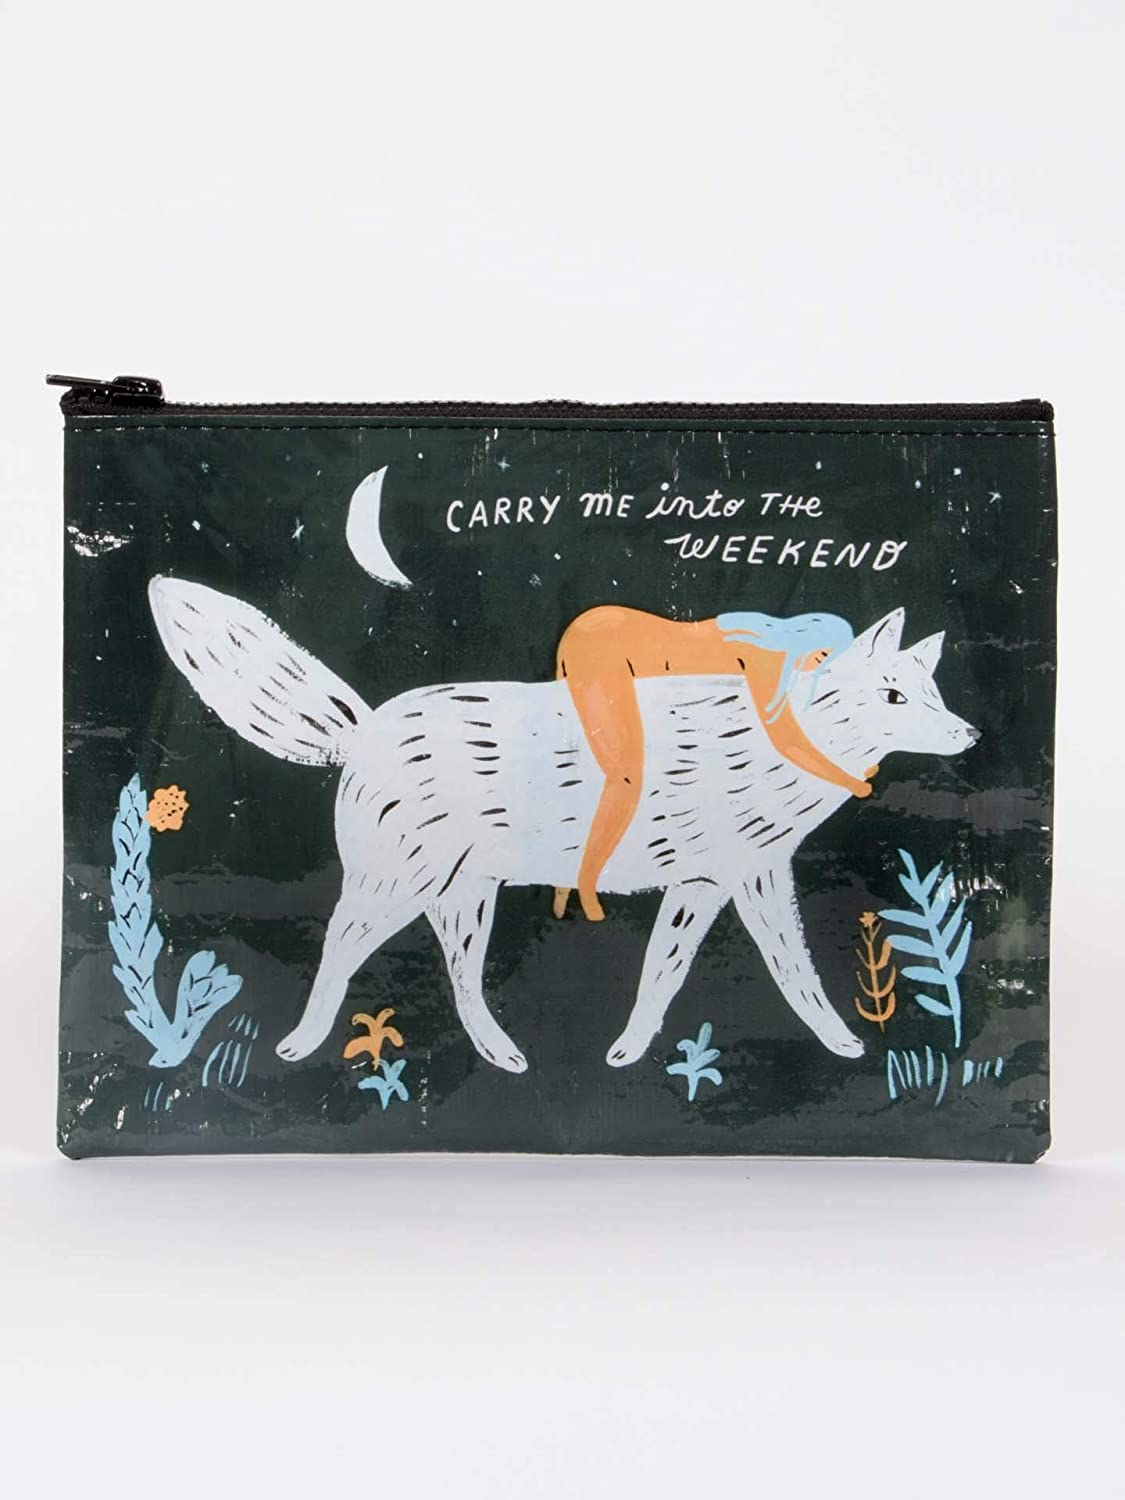 People I Want to Meet: 1 7.25 by 9.5 Inches Made Out of 95/% Recycled Materials Dogs Blue Q Zipper Pouch